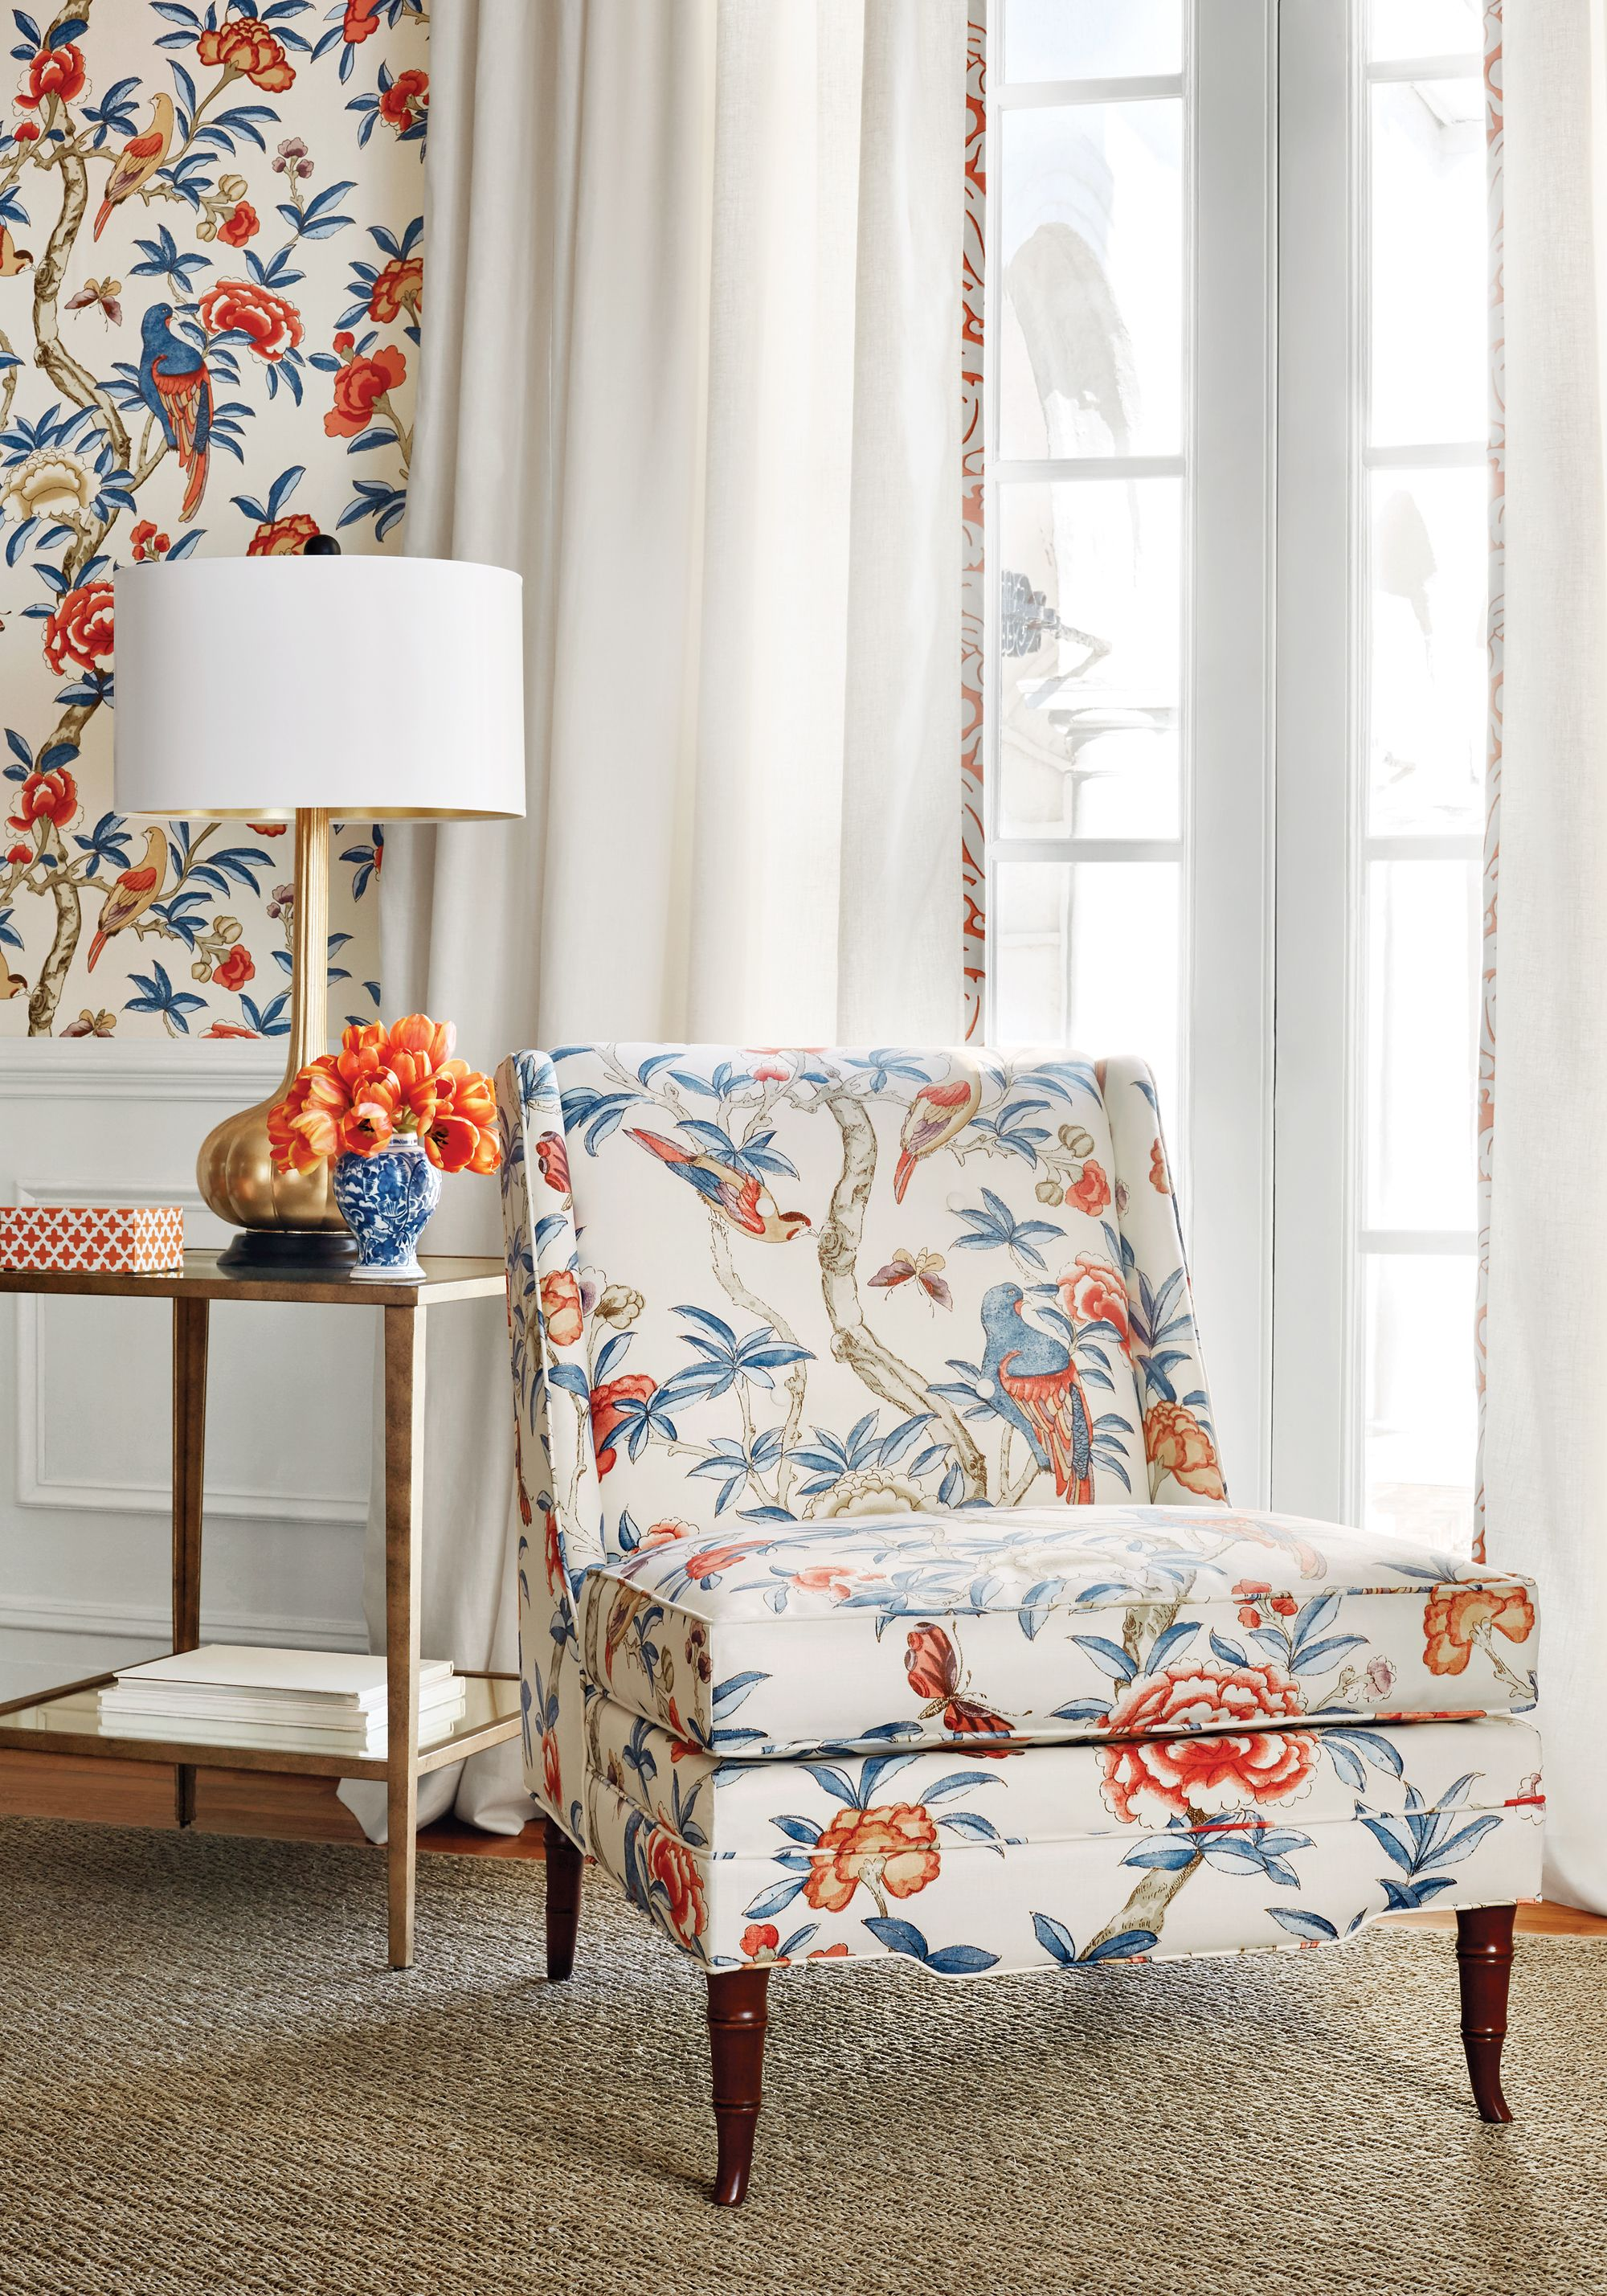 Bedford Chair from Thibaut Fine Furniture in Giselle printed fabric in Blue and Coral   Thibaut ...